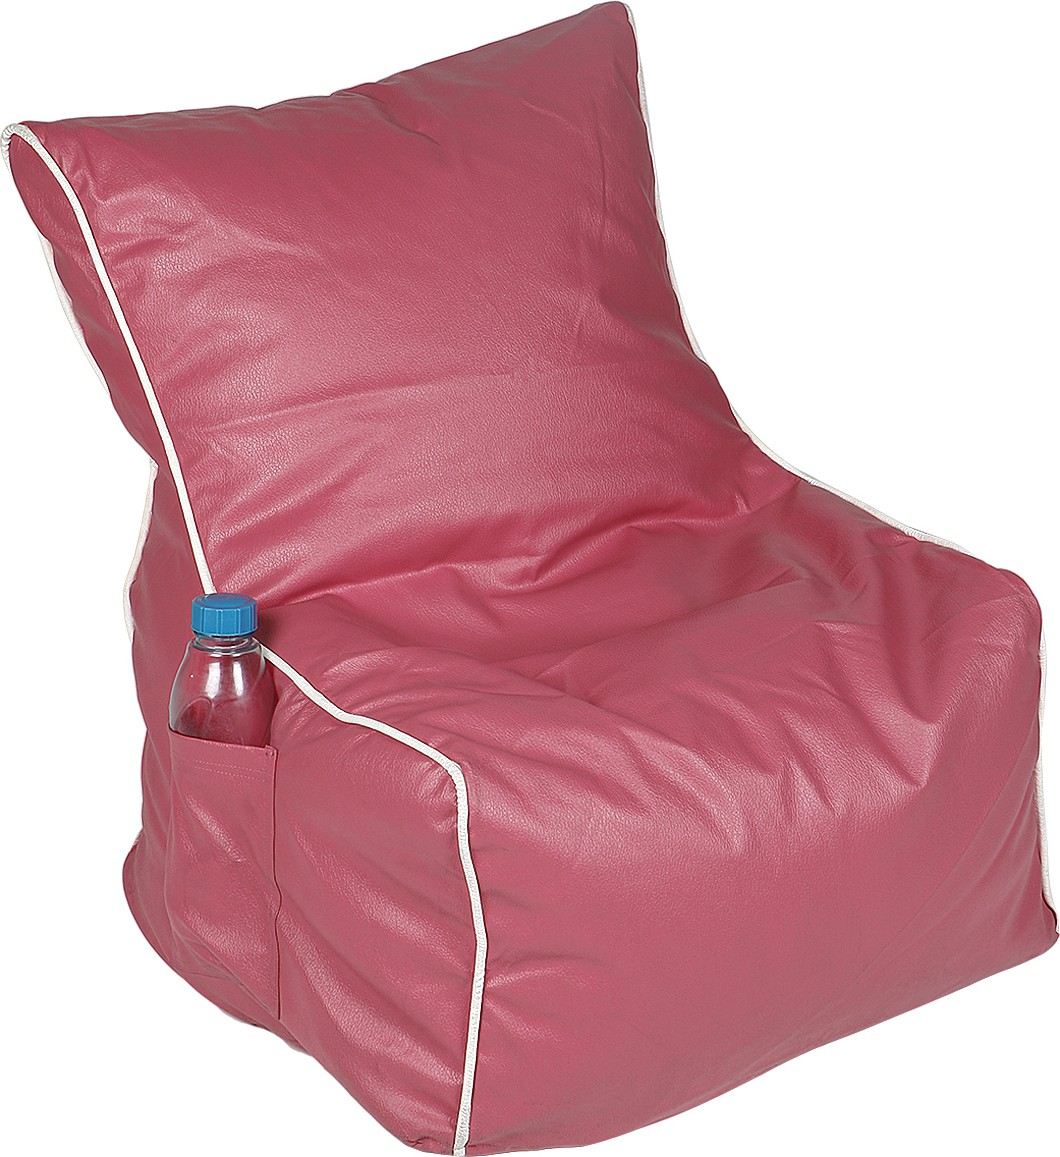 View Rehal XL Bean Bag Cover(Pink, White) Furniture (Rehal)